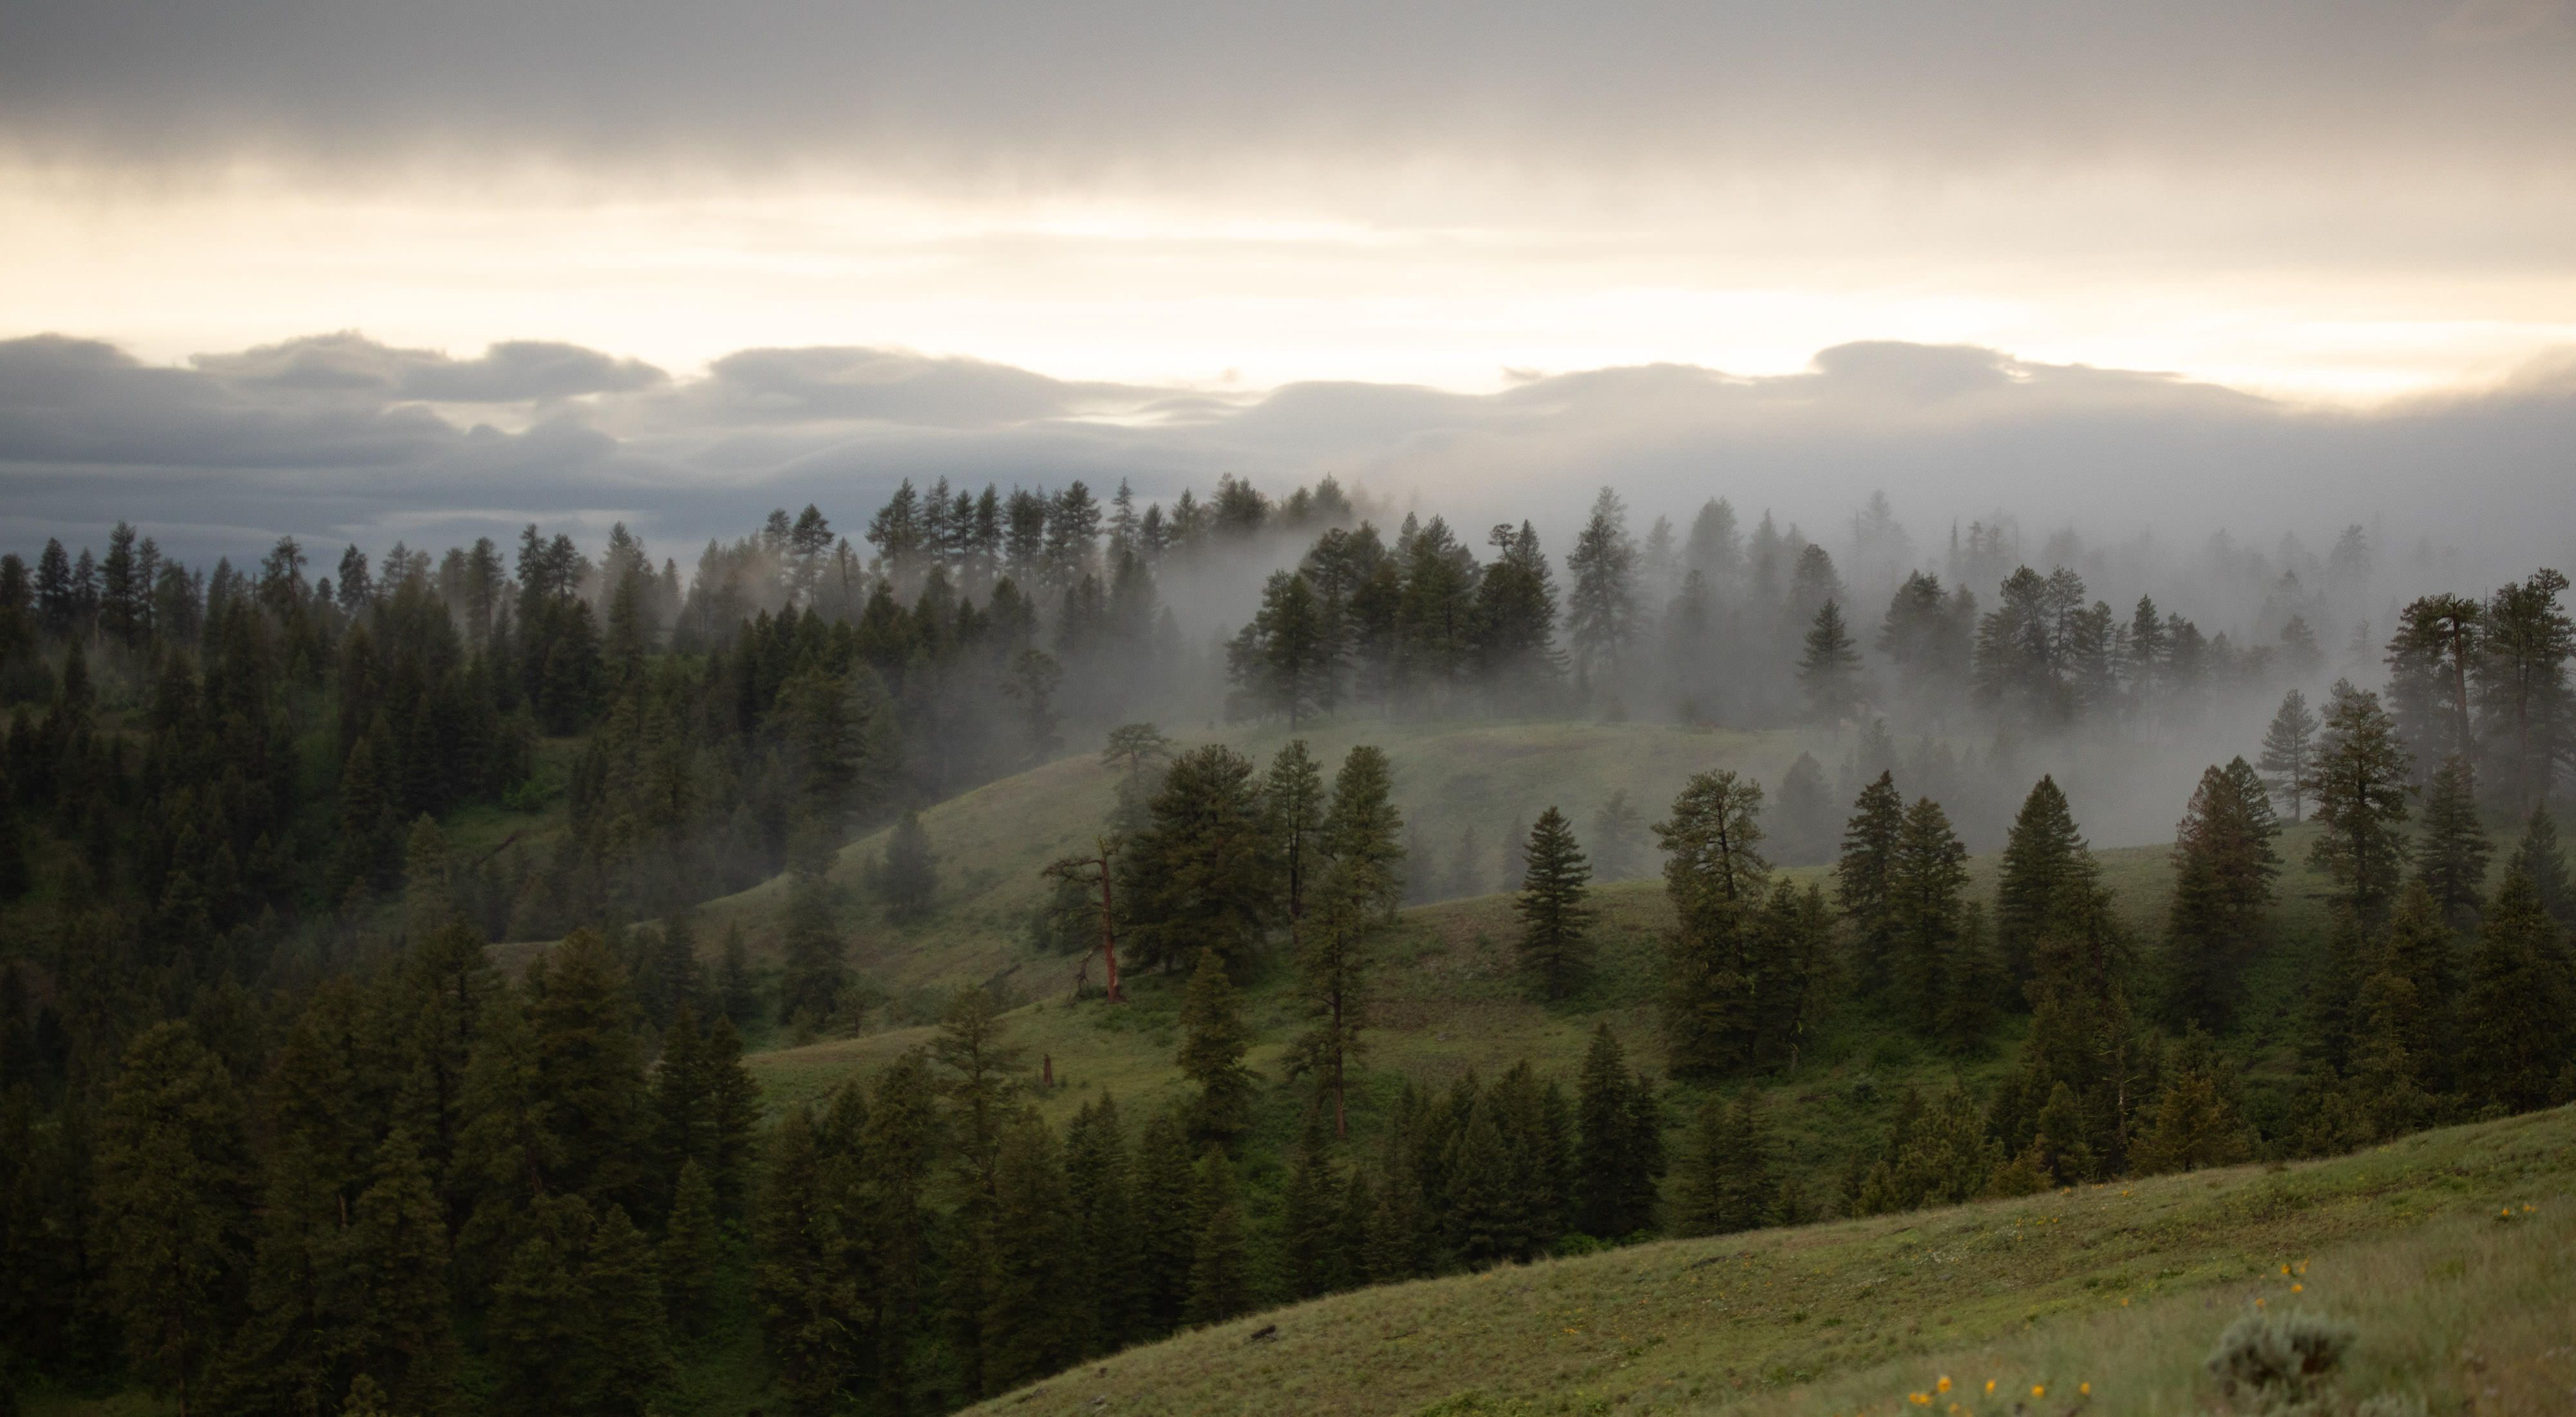 Fog drifts between trees on a hillside with the sun rising in the distance.